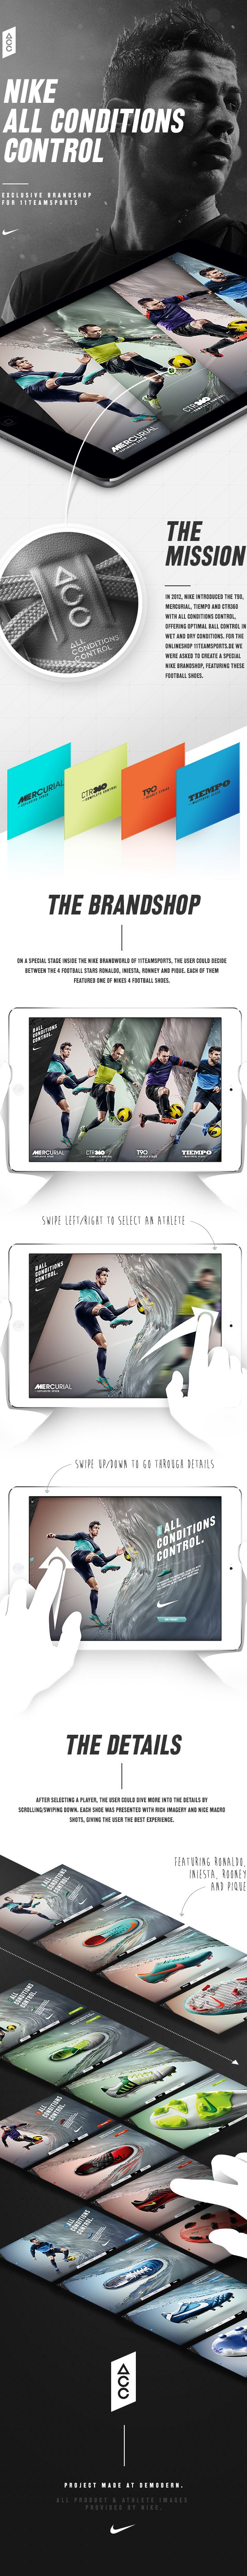 Nike Football – All Conditions Control Brandshop by Oliver Ecker, via Behance